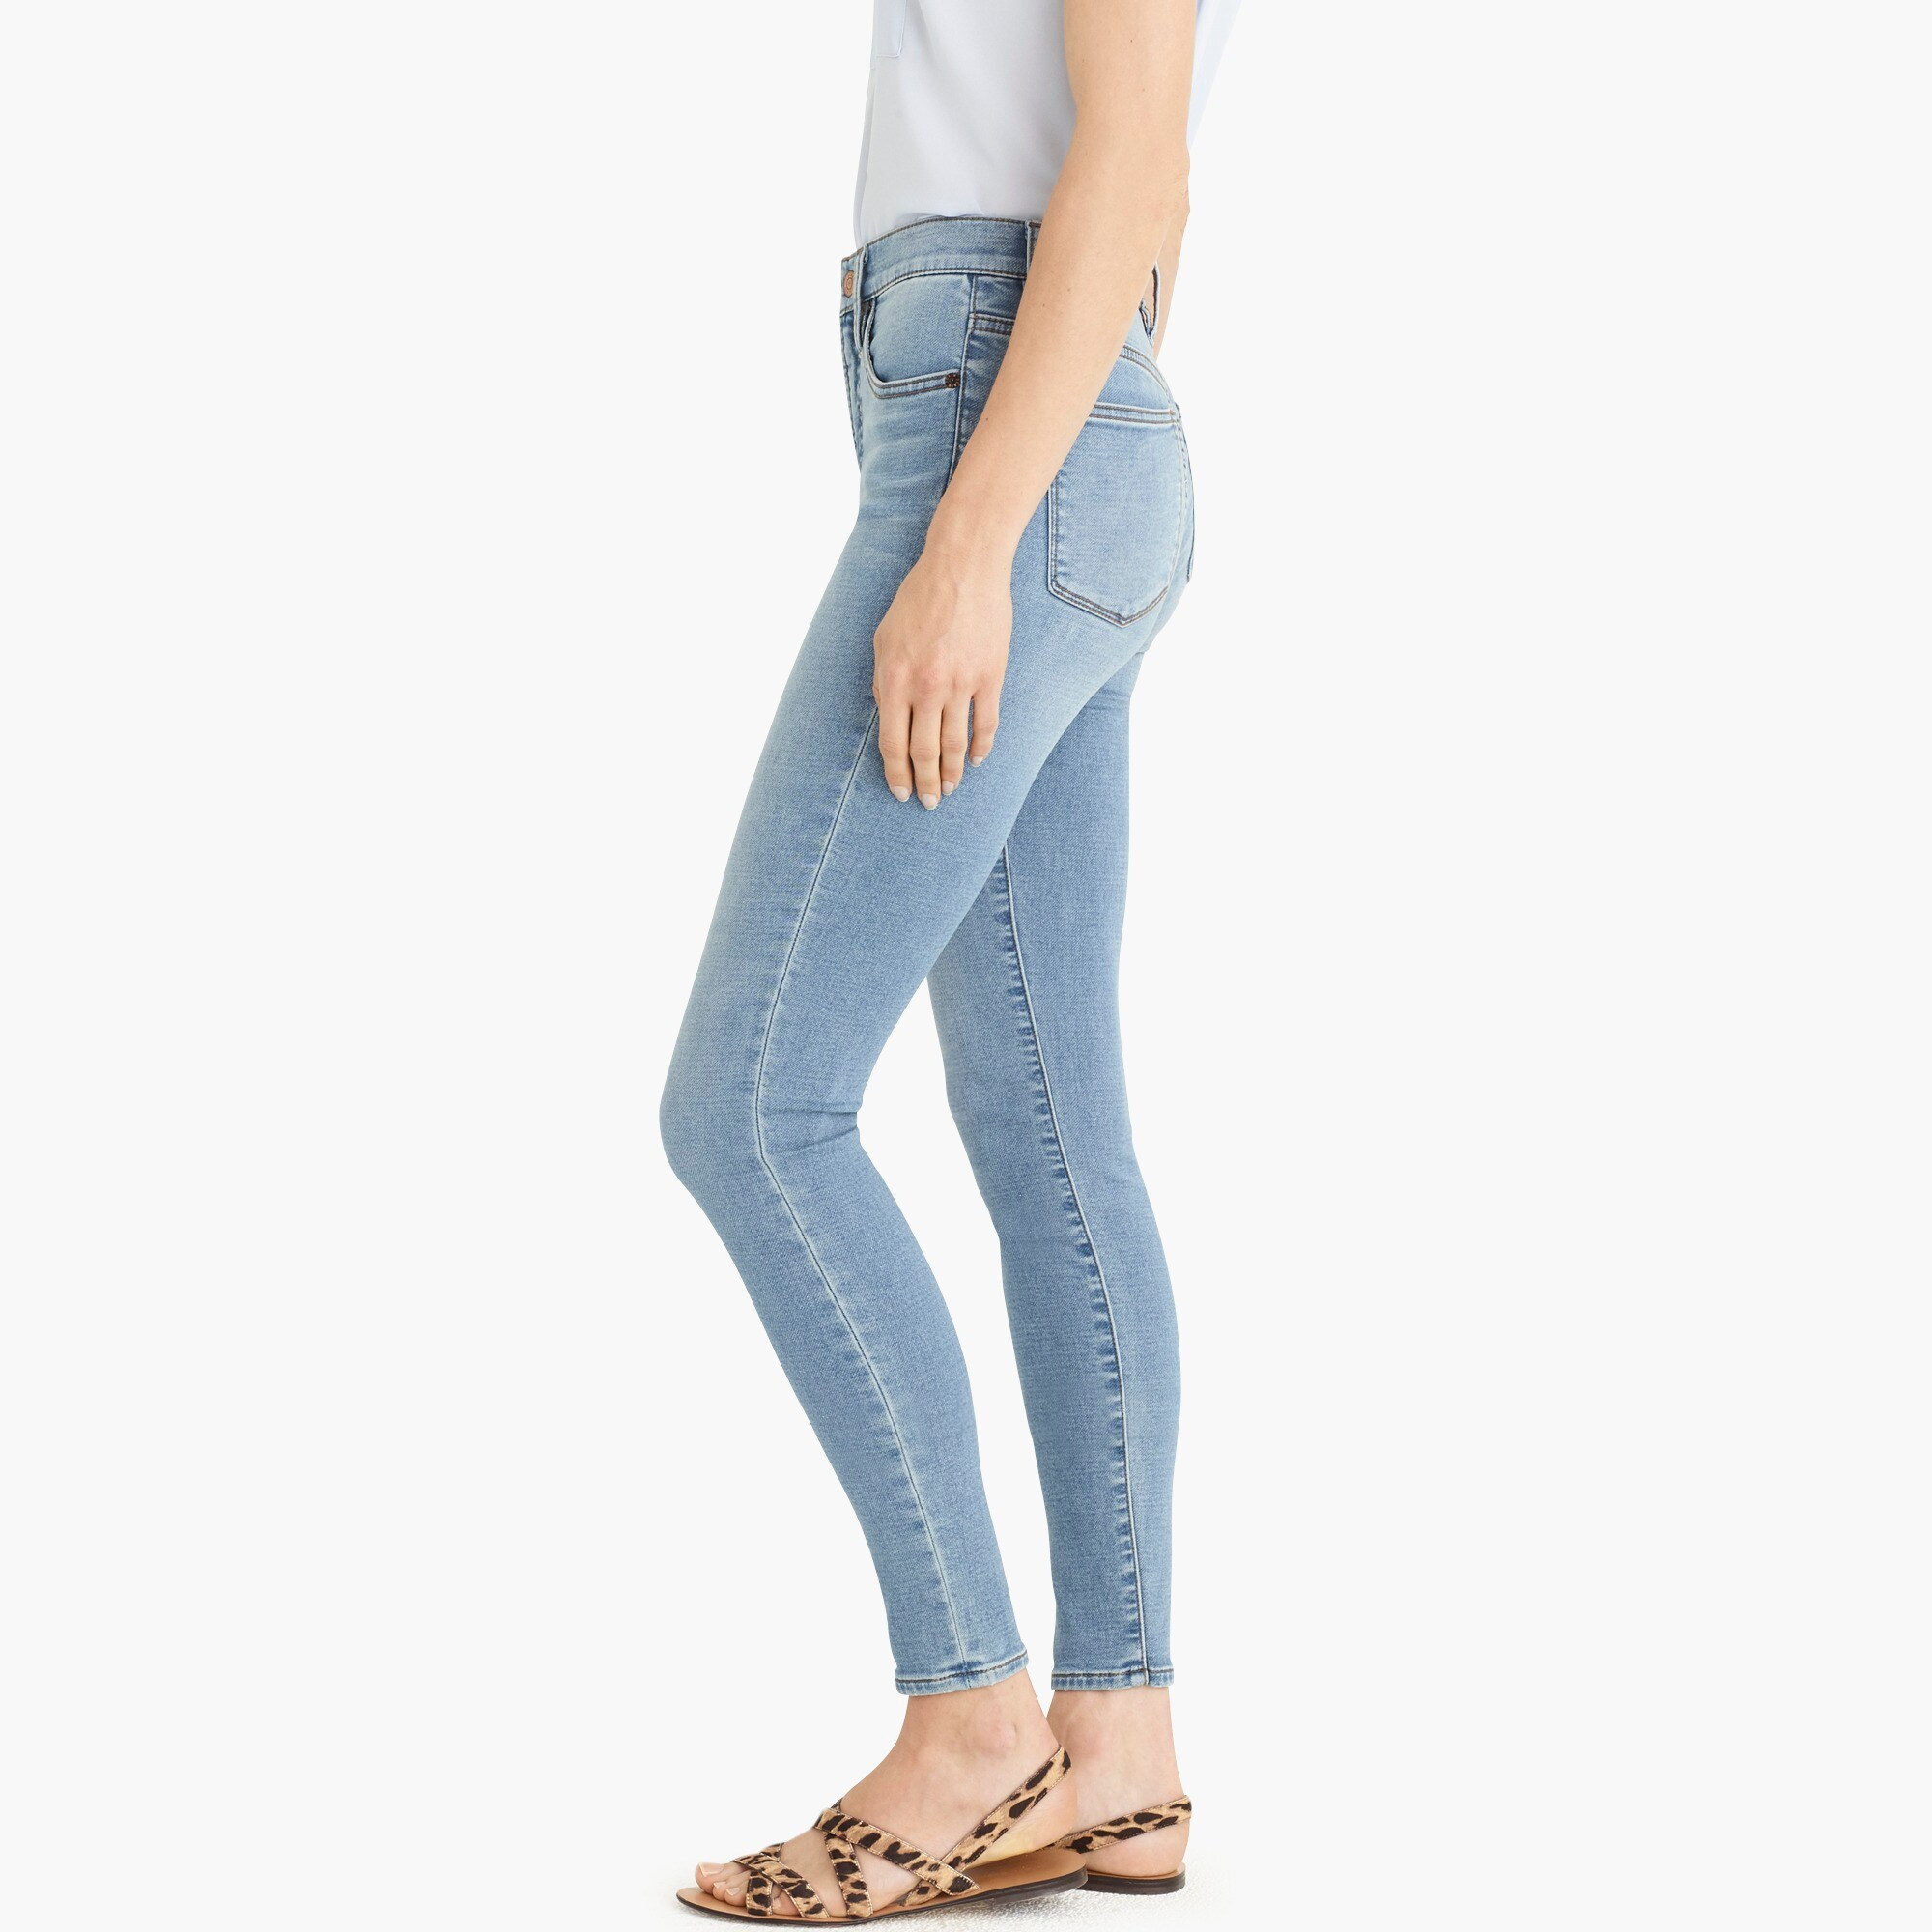 "Petite9"" high-rise jeggings in light blue wash"